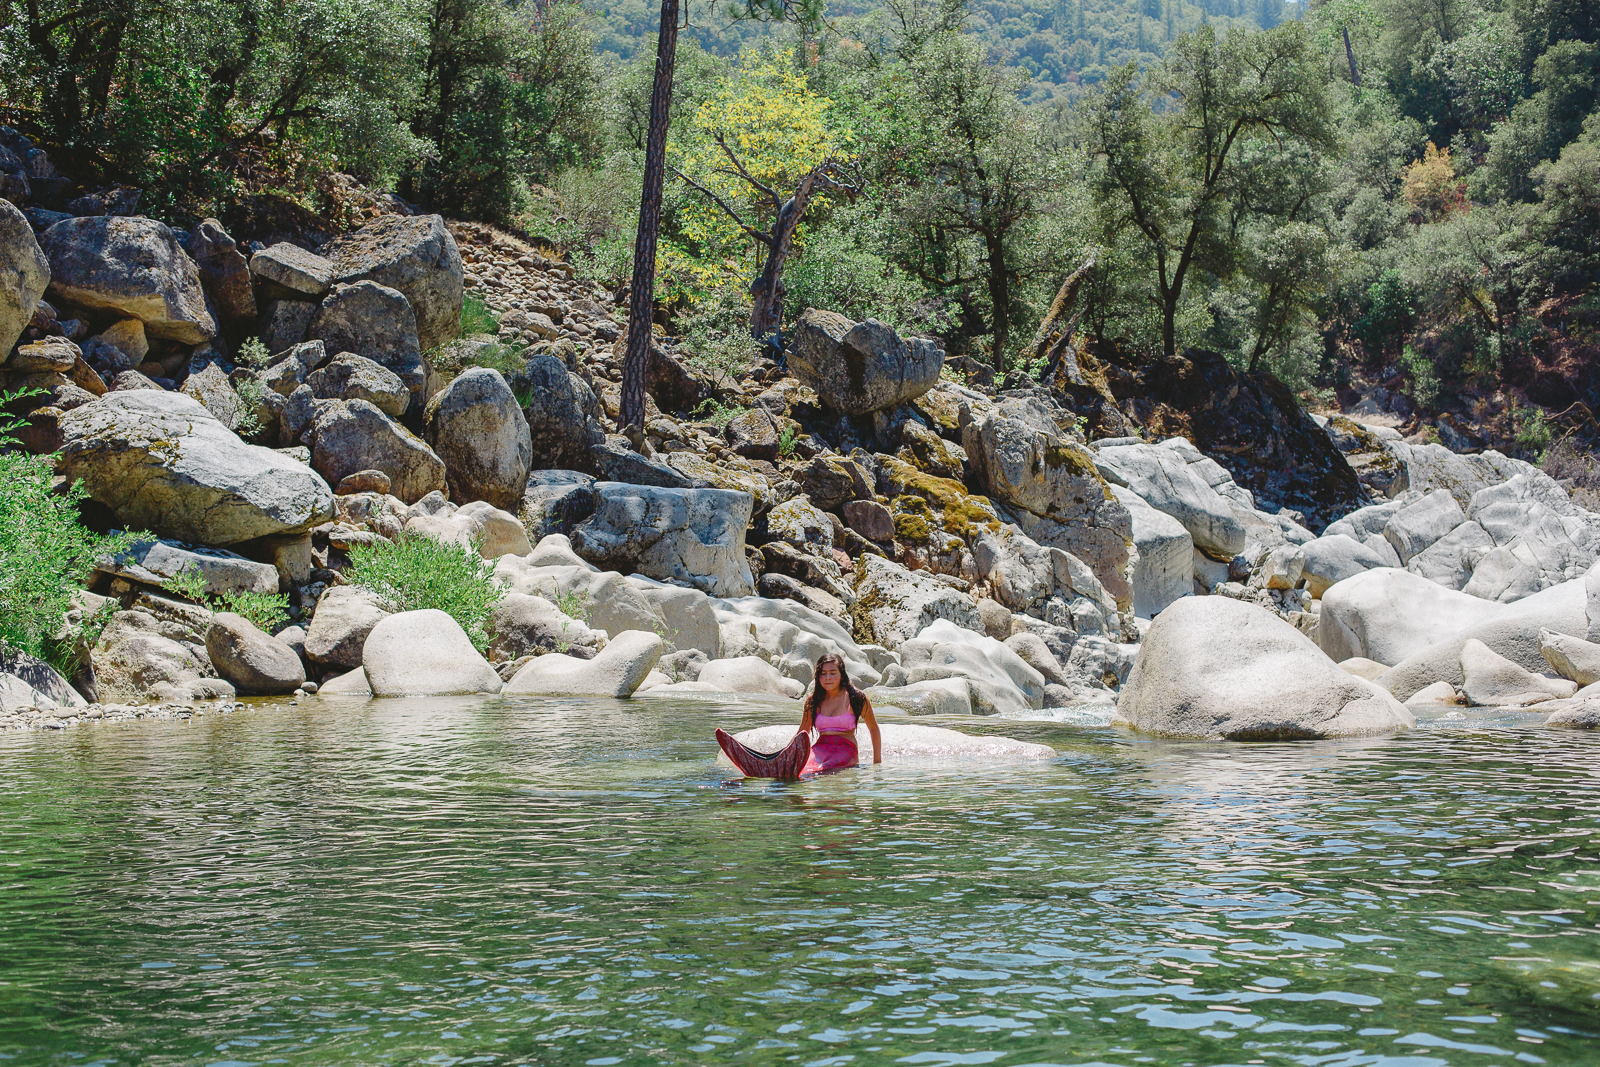 Mermaid posing at the rocky Yuba River